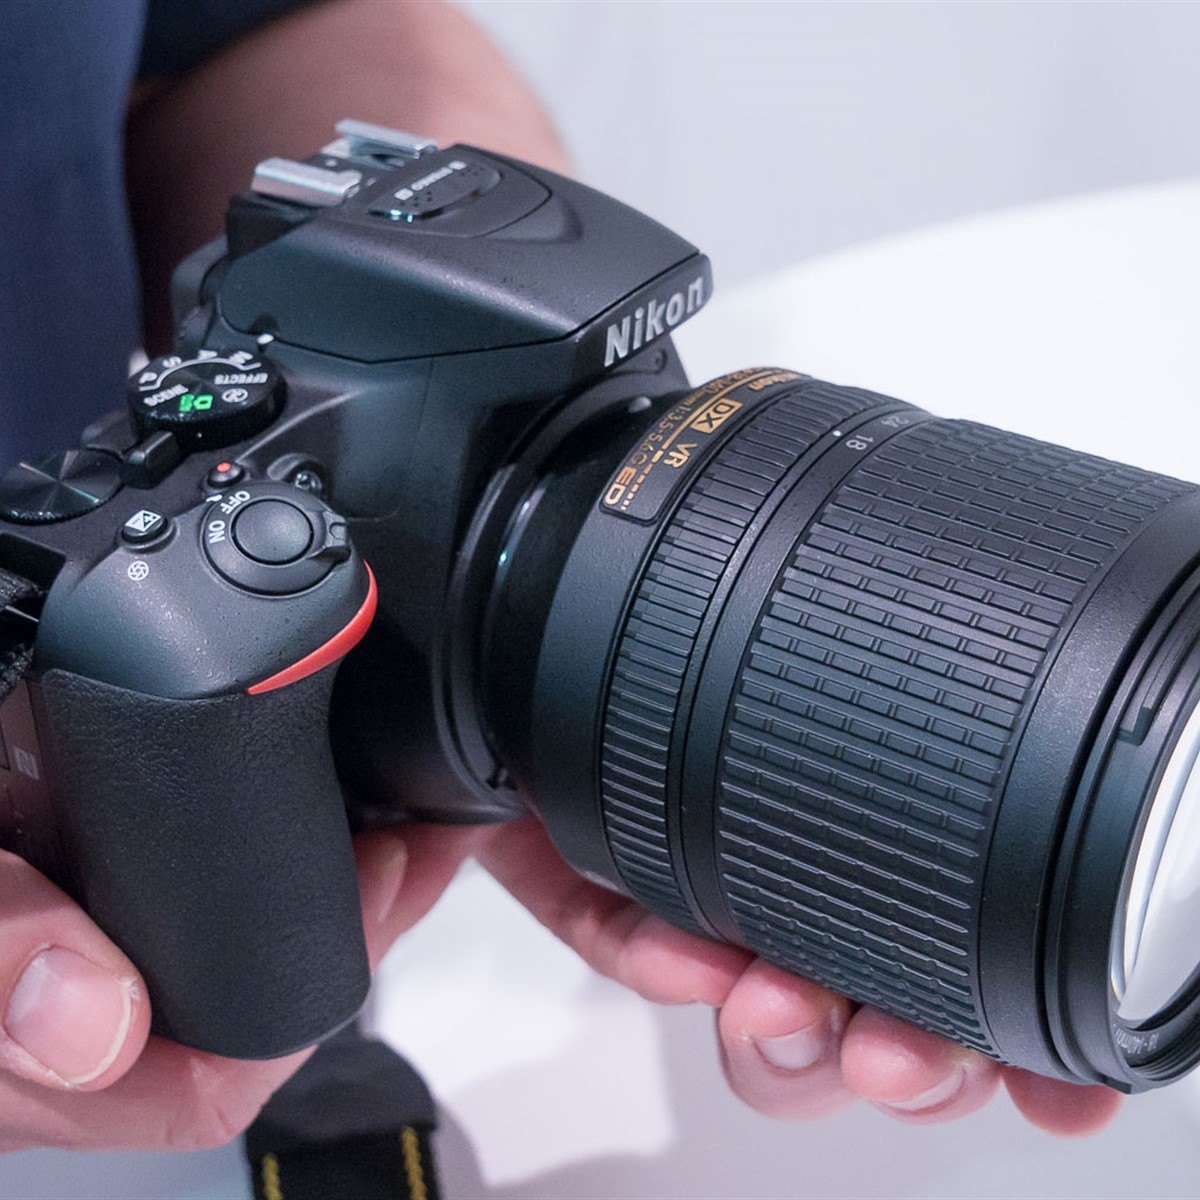 13c04aa7333 CES 2017  Hands-on with Nikon D5600  Digital Photography Review